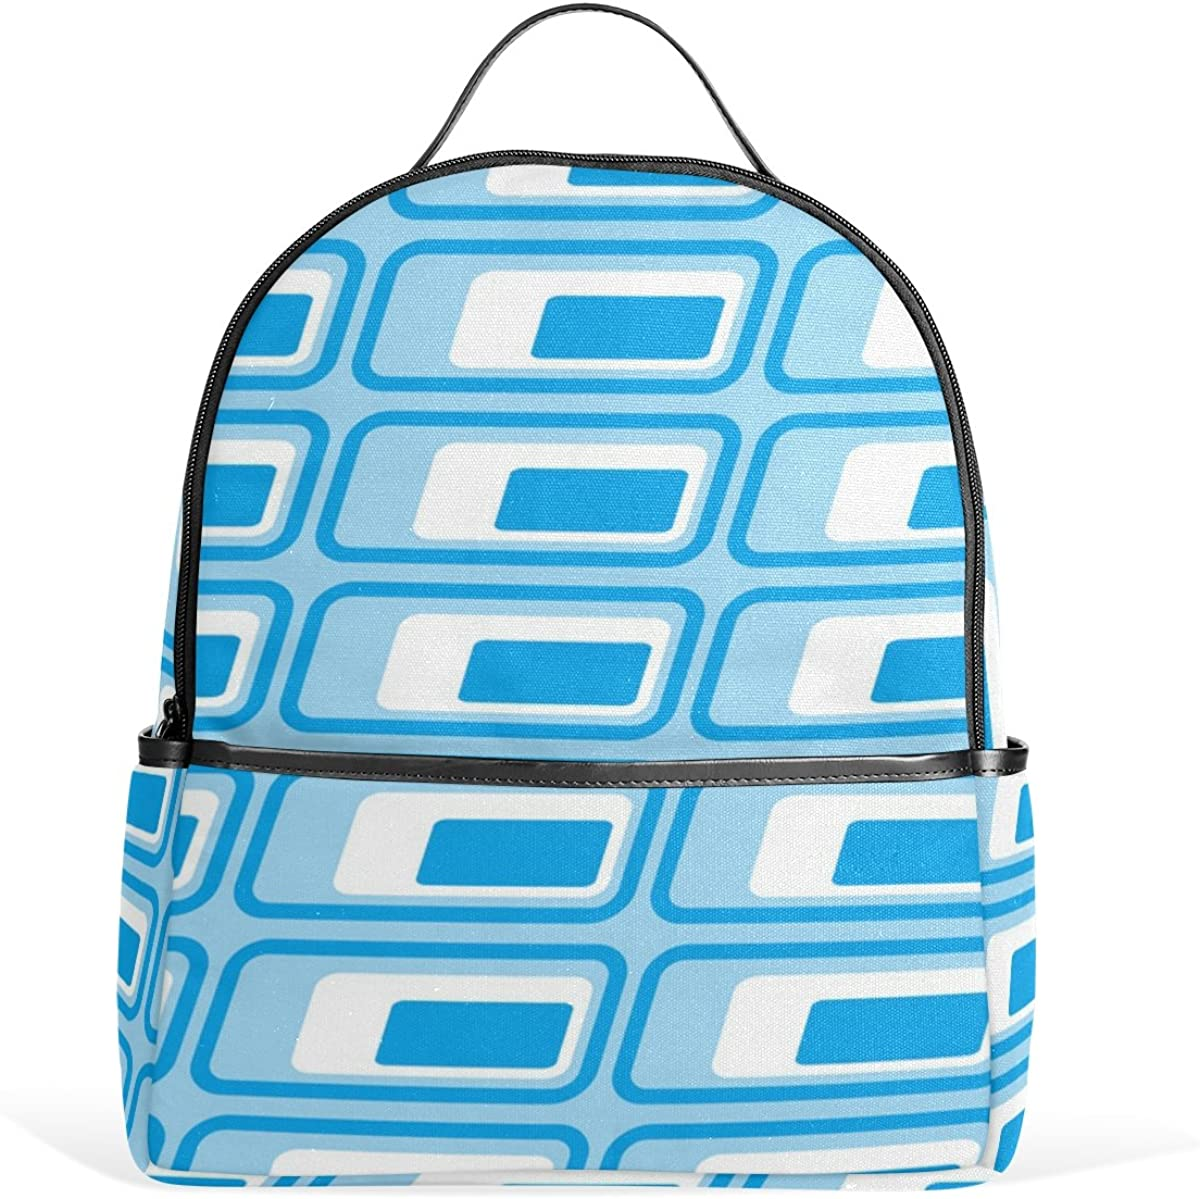 Mr.Weng Square Texture Printed Canvas Backpack For Girl and Children